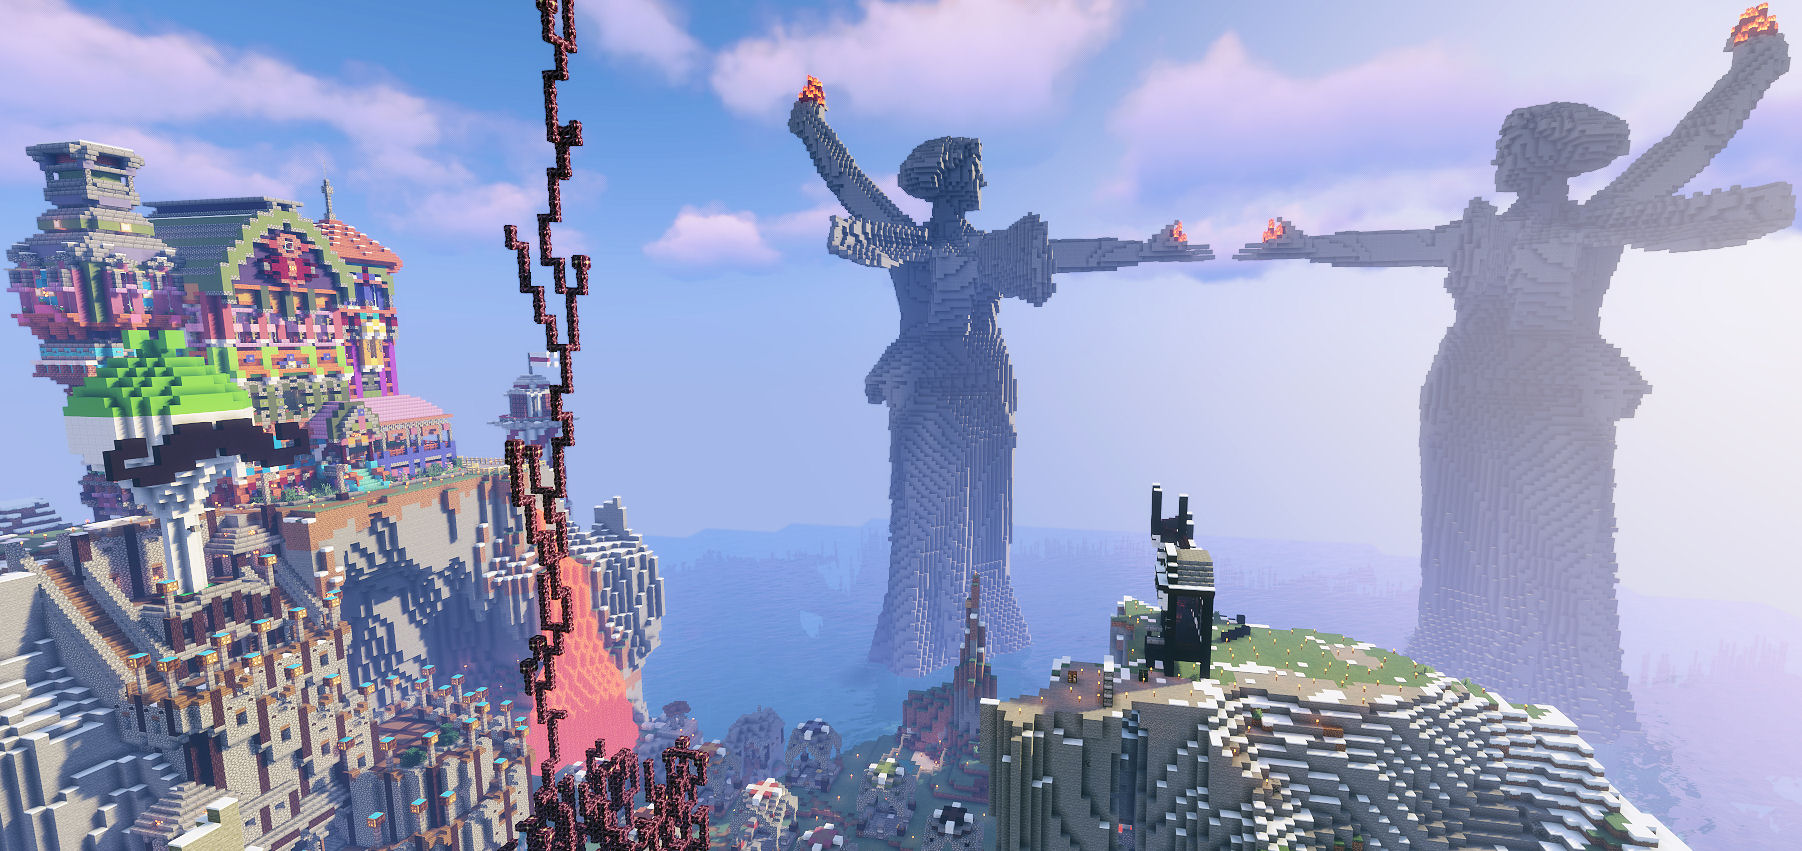 June 2020 Player build winner - Error_100, AuntieIzzy, danieldoodle, iwillmameyou, and Finnie